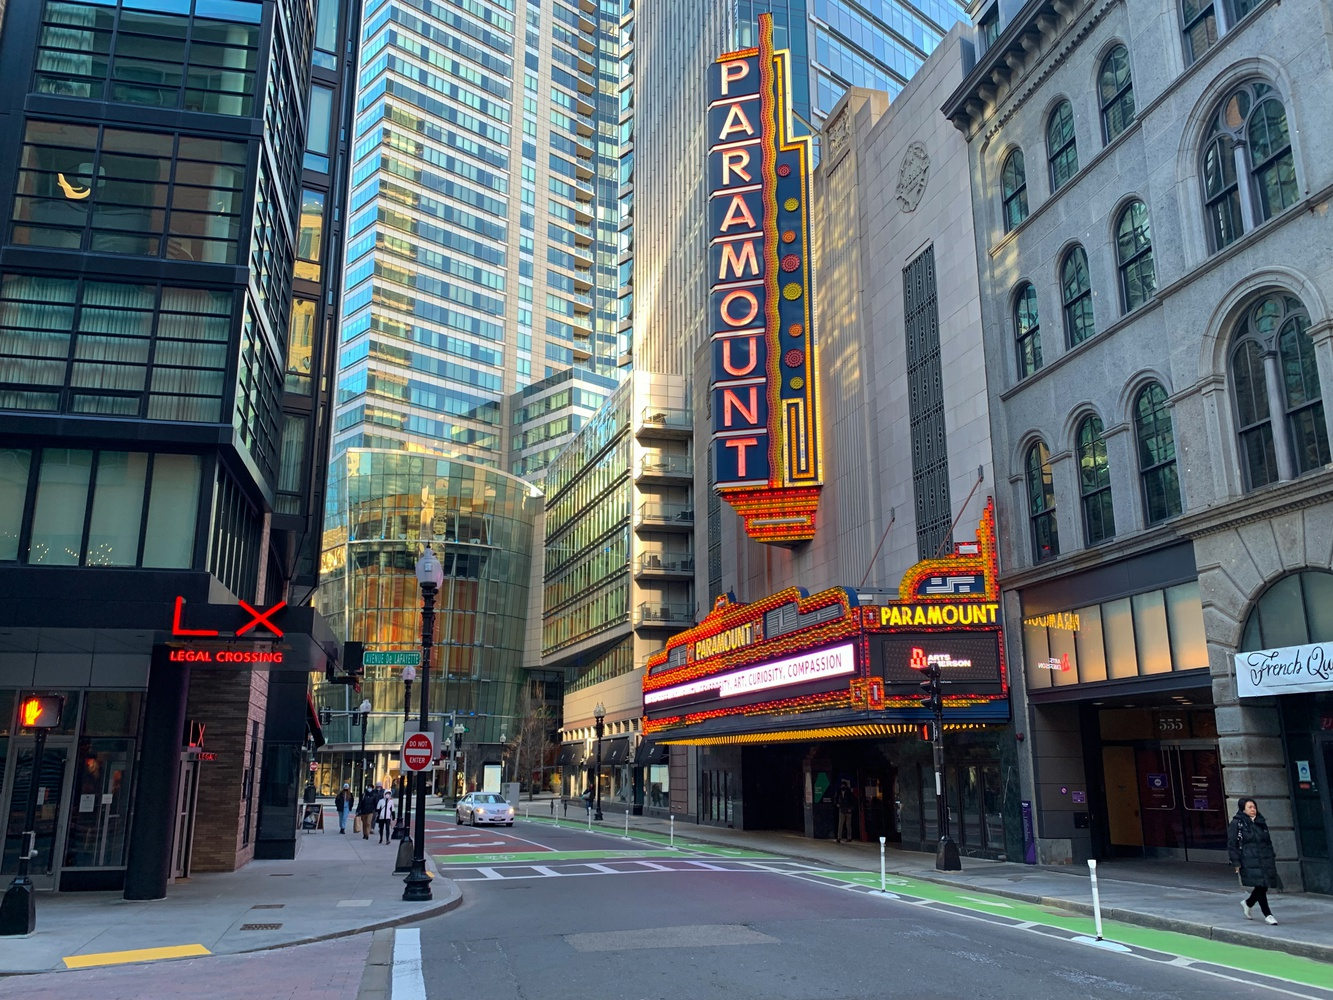 Paramount Theatre is a theater in Boston on Washington Street. Though arts landmarks in the Boston area were forced to close due to the coronavirus pandemic, many quickly learned to adapt through virtual programming and live streaming.